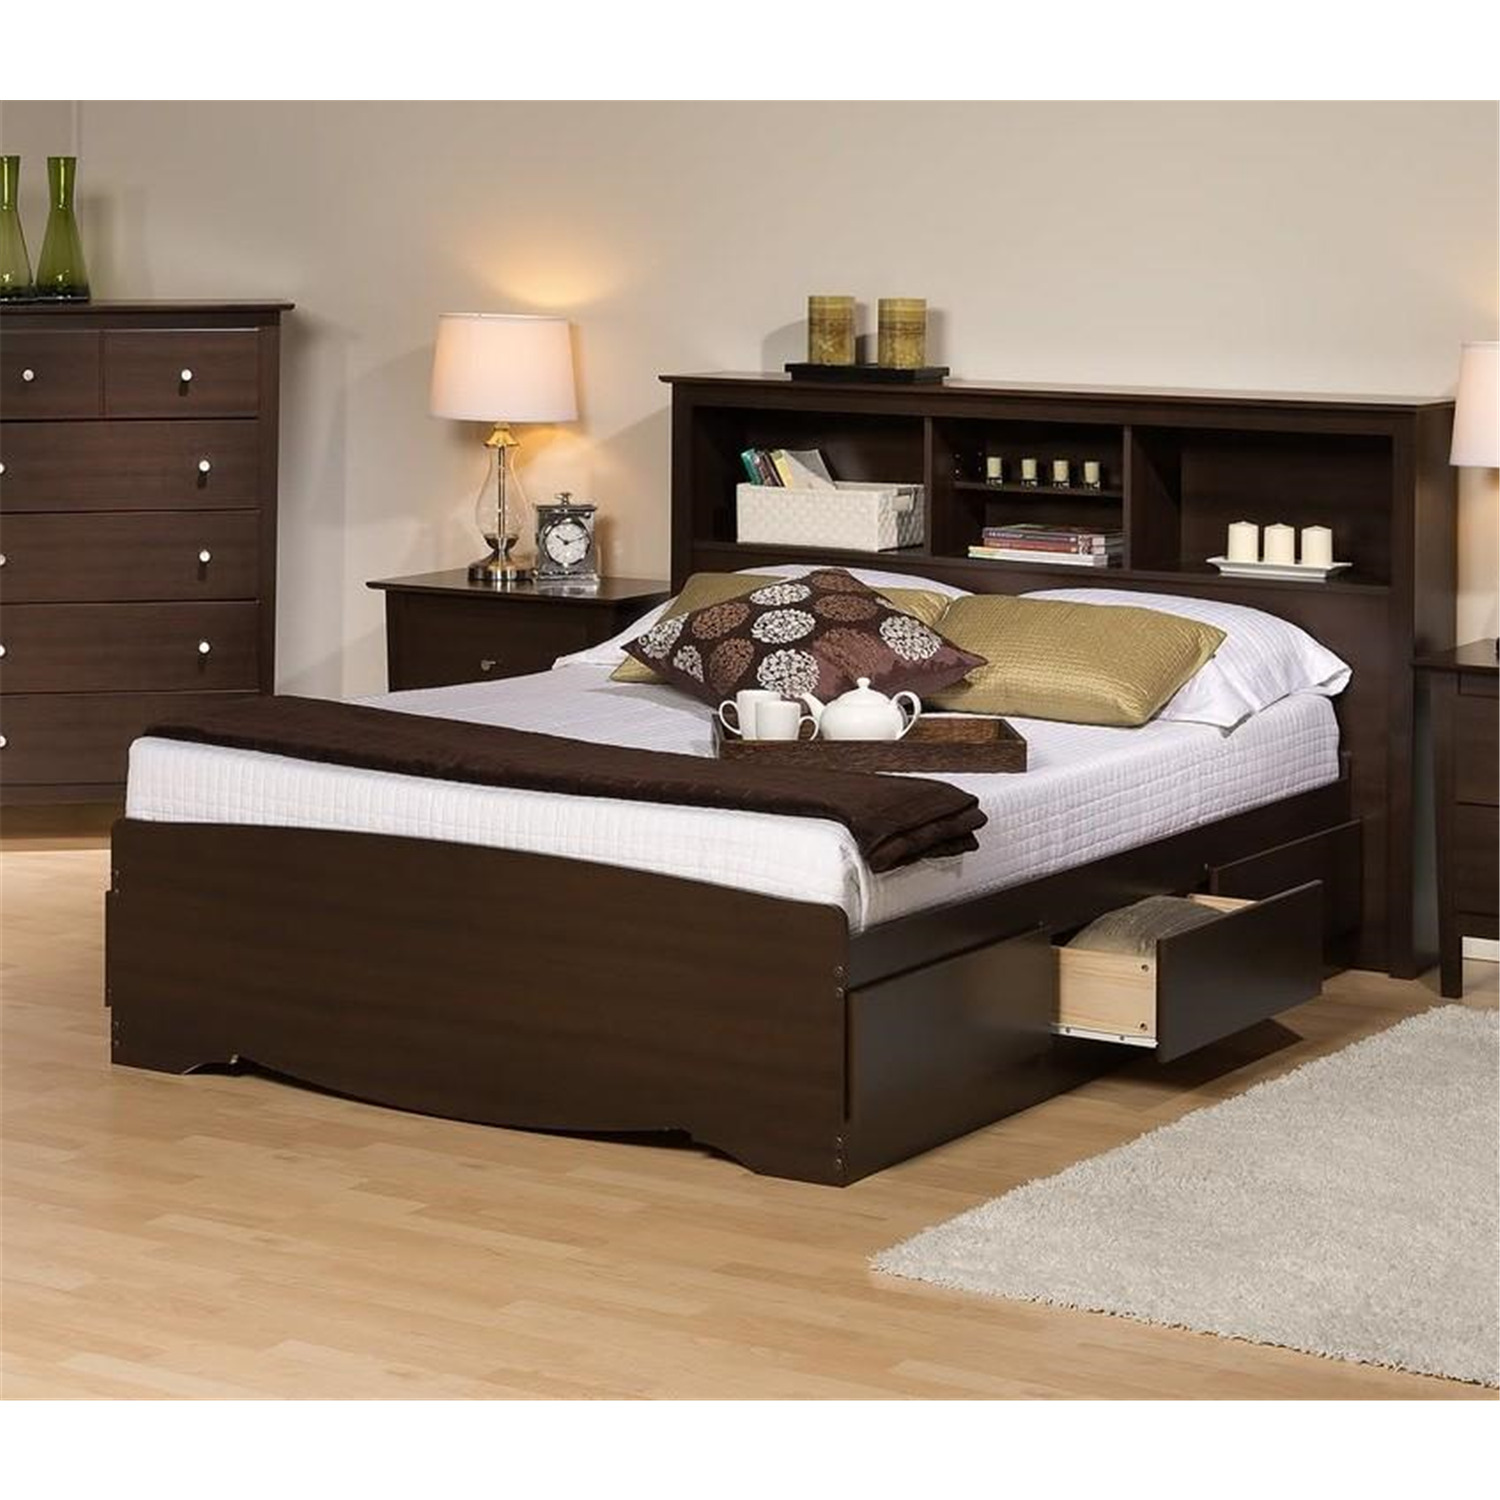 Platform Storage Bed w/ Bookcase Headboard - From $406.55 ...